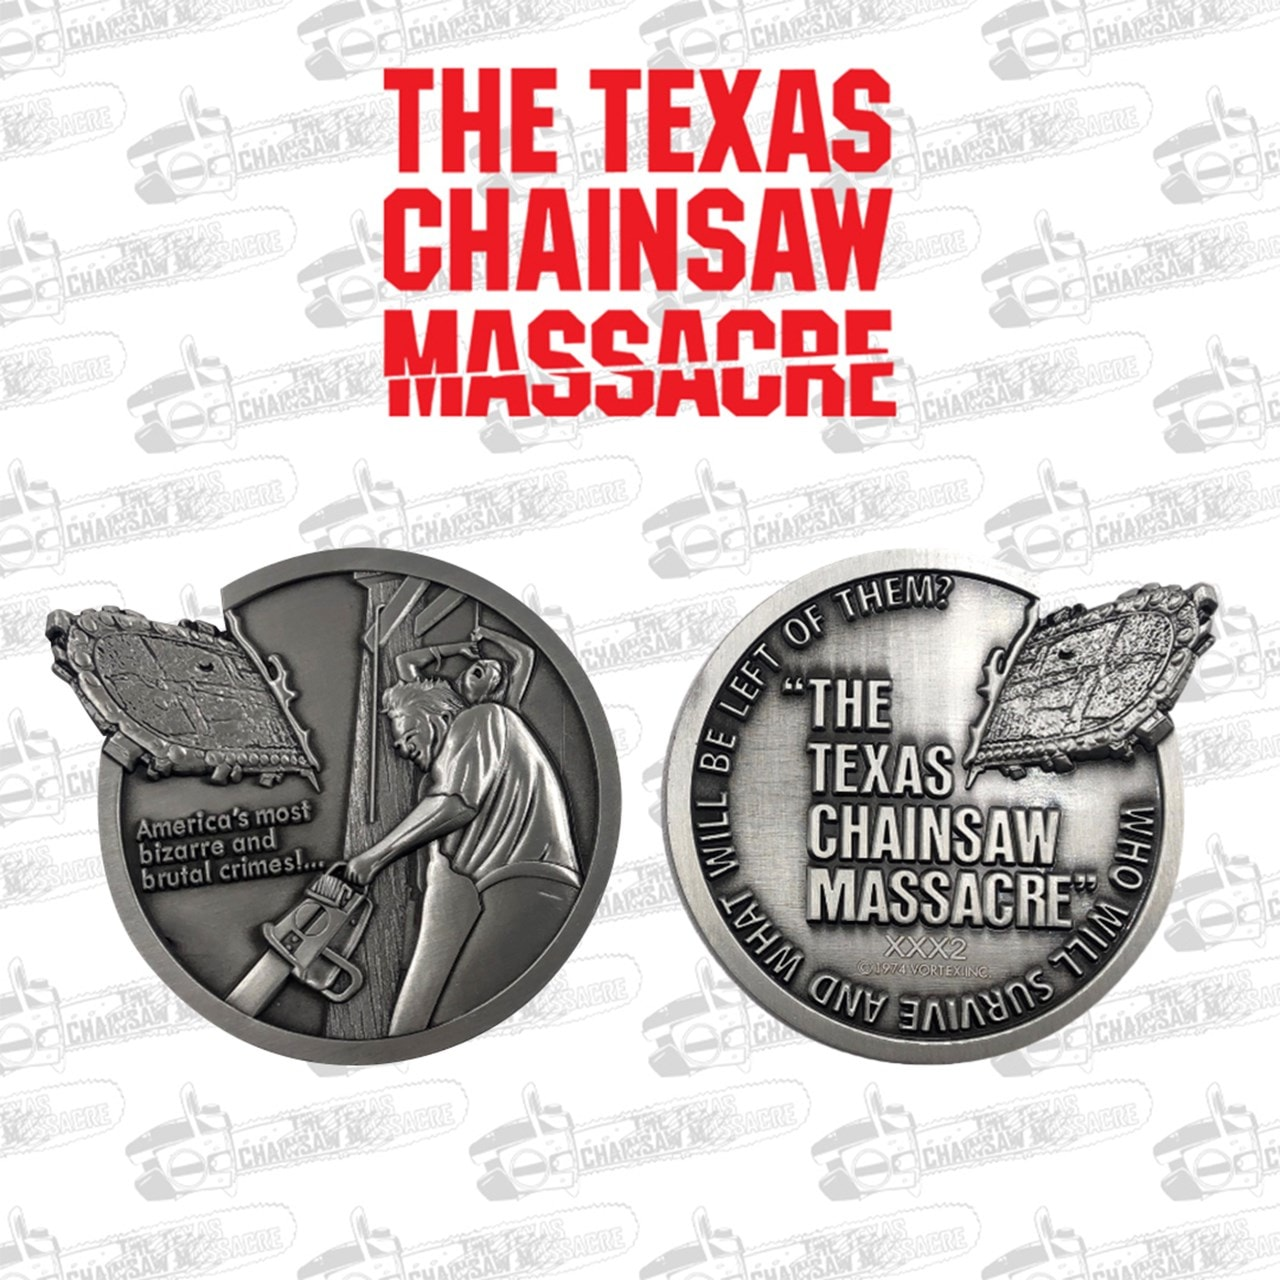 Texas Chainsaw Massacre Limited Edition Medallion - 1